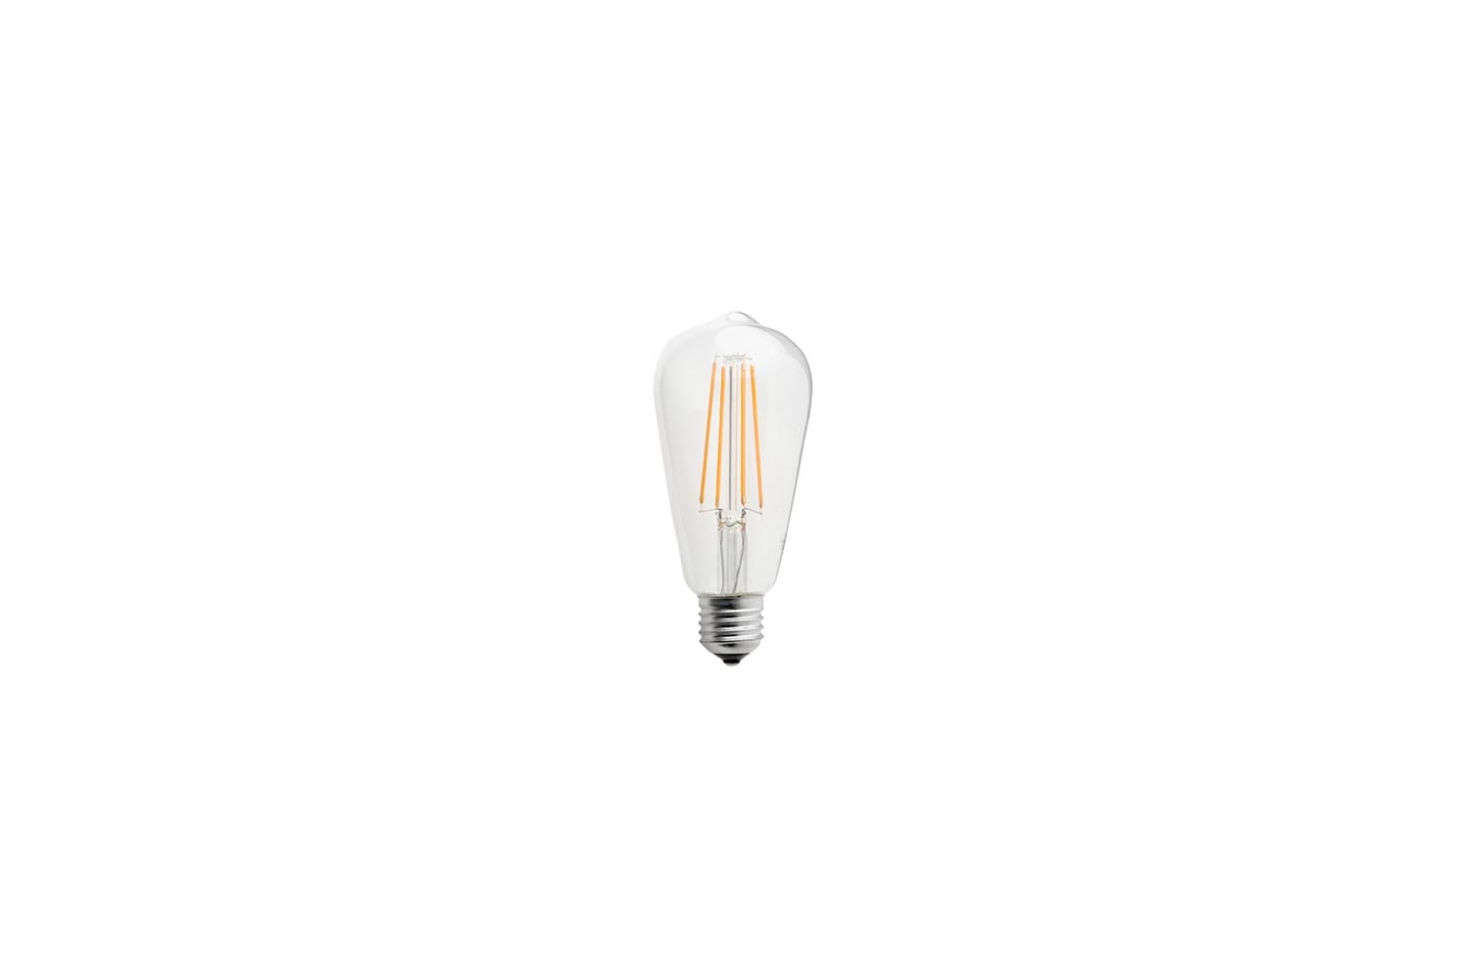 The Zangra LED Light Bulb Filament Edison 4W casts an extra warm light; €.95 at Zangra.